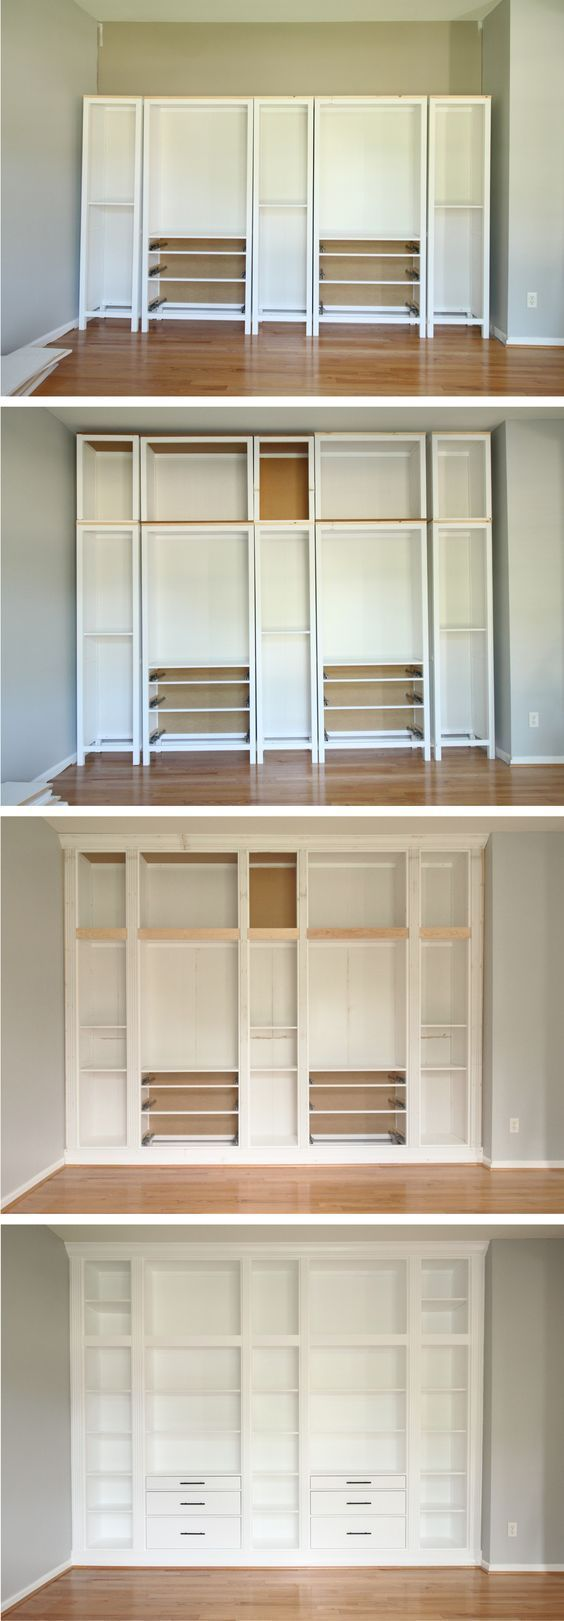 10 Ways to Hack your IKEA Products to Make them More Useful | Banco ...